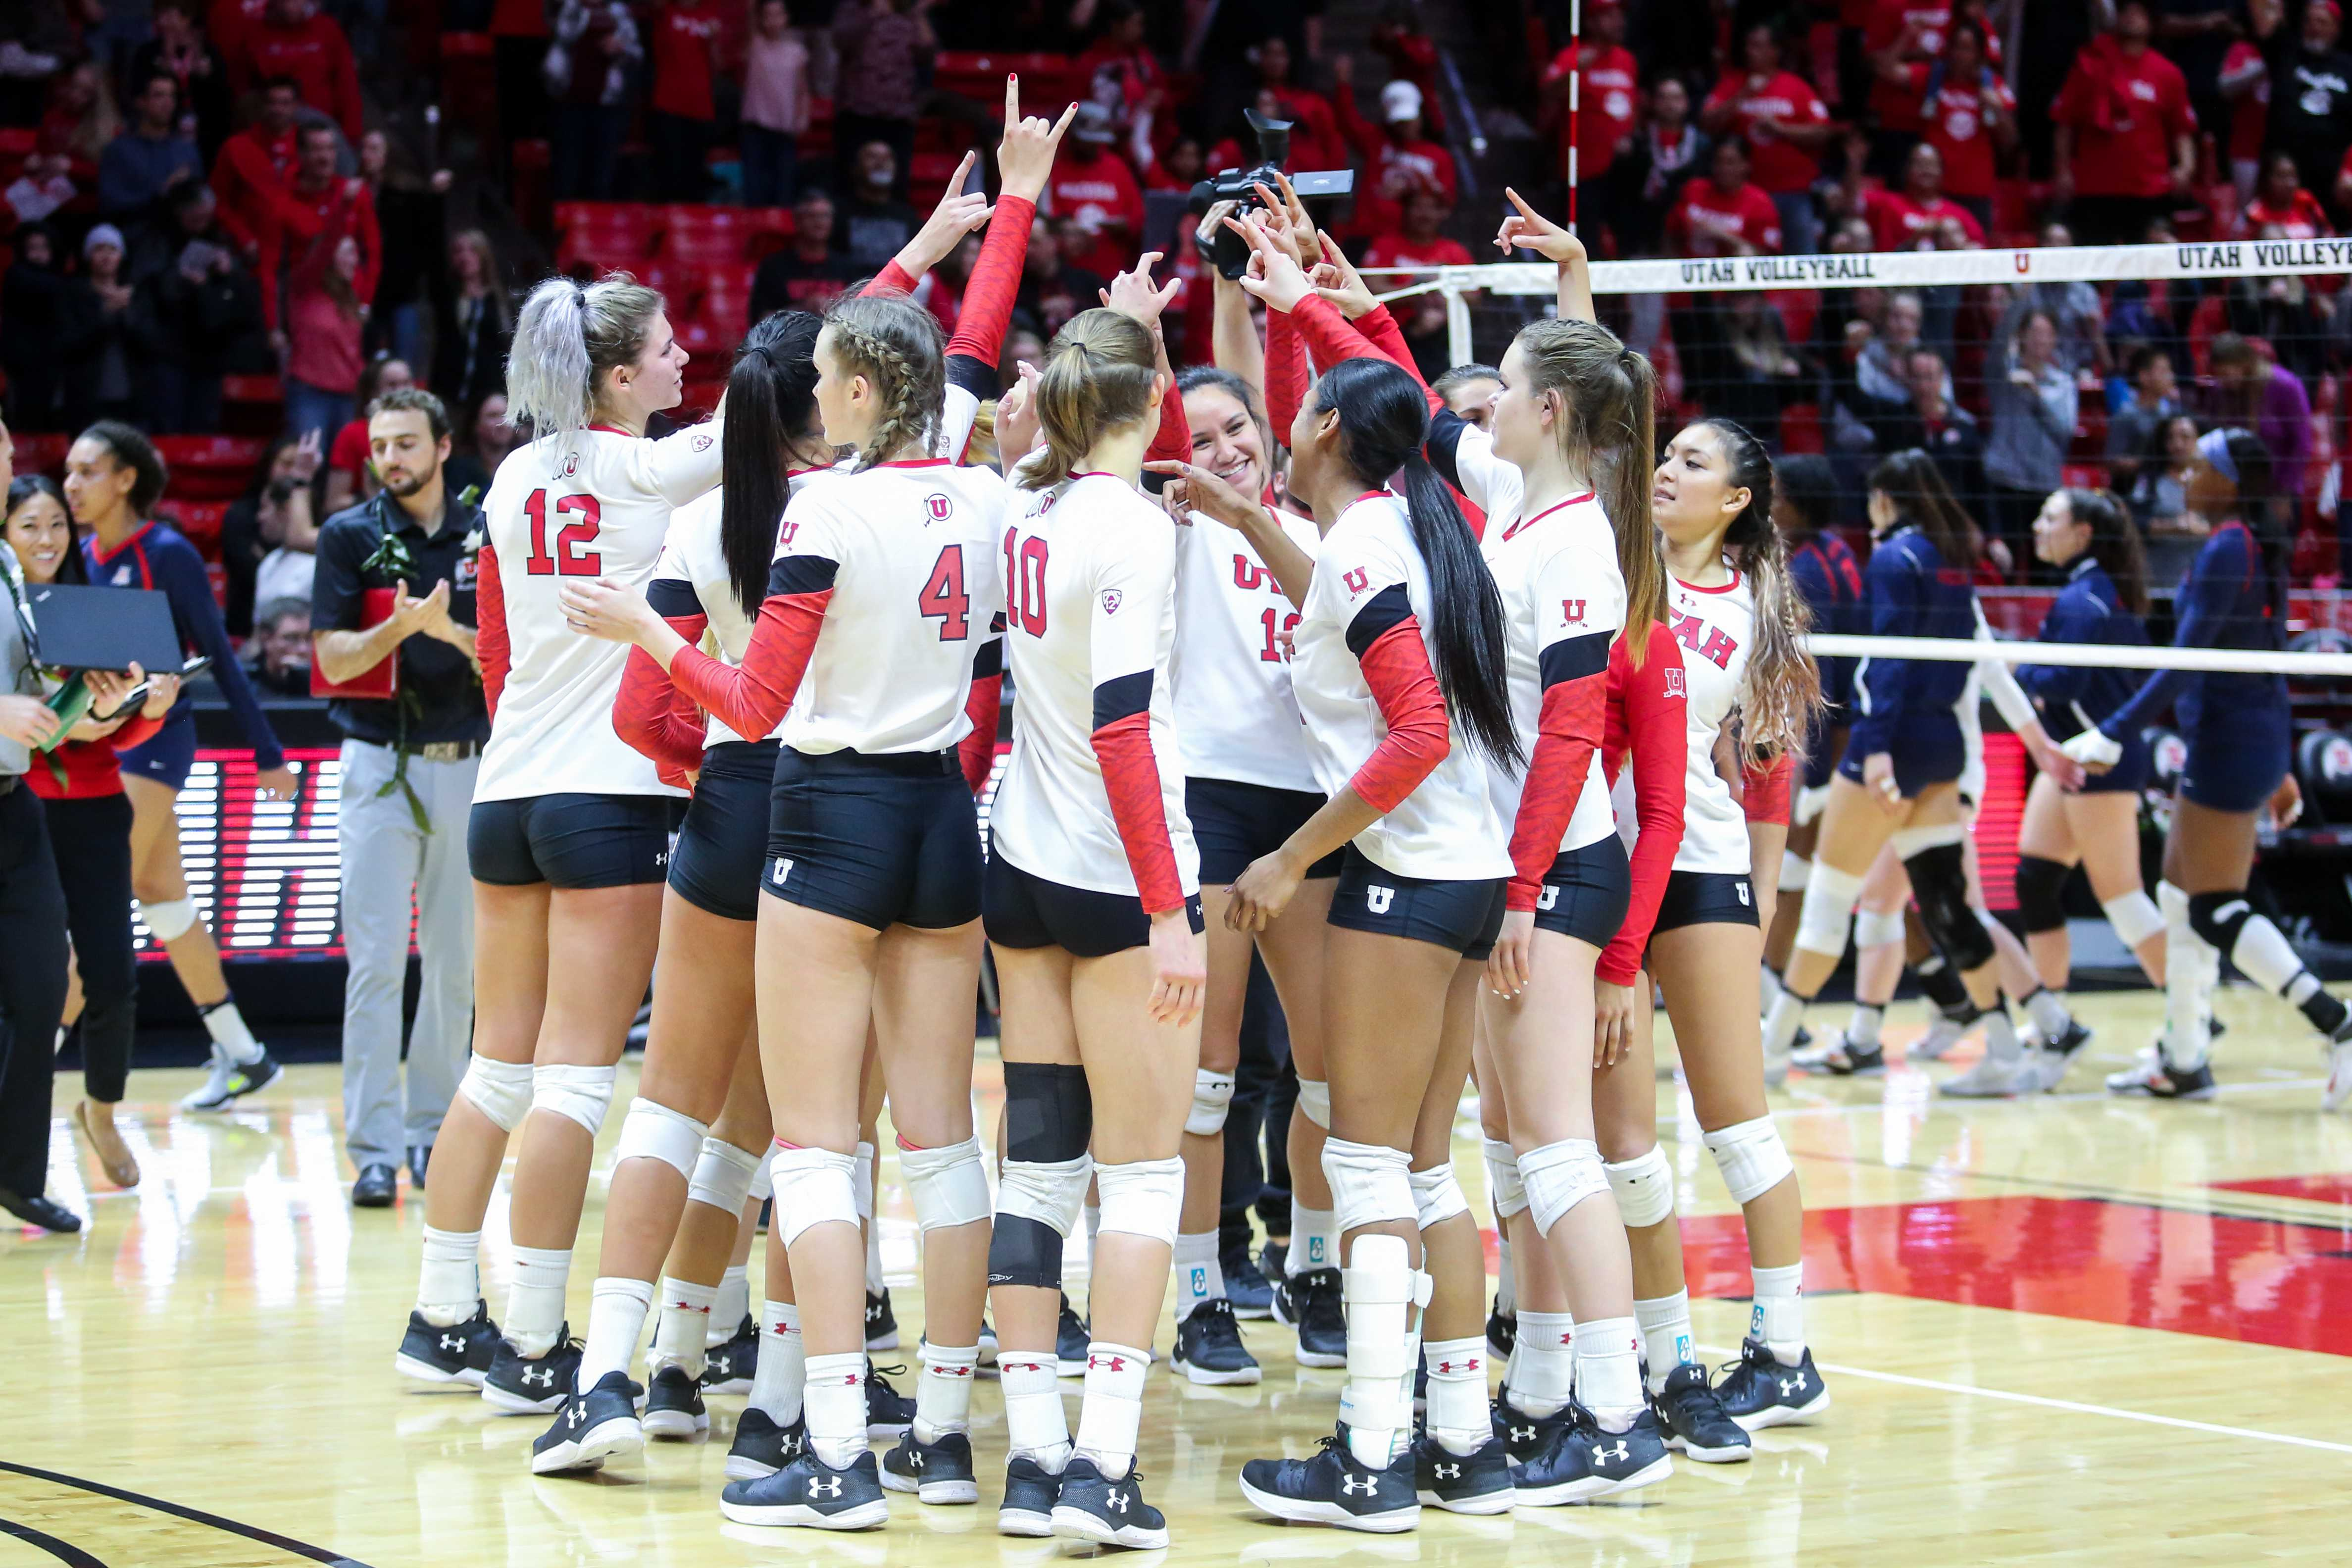 University of Utah Volleyball Team celebrated the win in an NCAA Volleyball game vs. The Arizona Wildcats in Jon M. Huntsman Center in Salt Lake City, UT on Saturday, Nov. 18, 2017.  (Photo by Curtis Lin/ Daily Utah Chronicle)